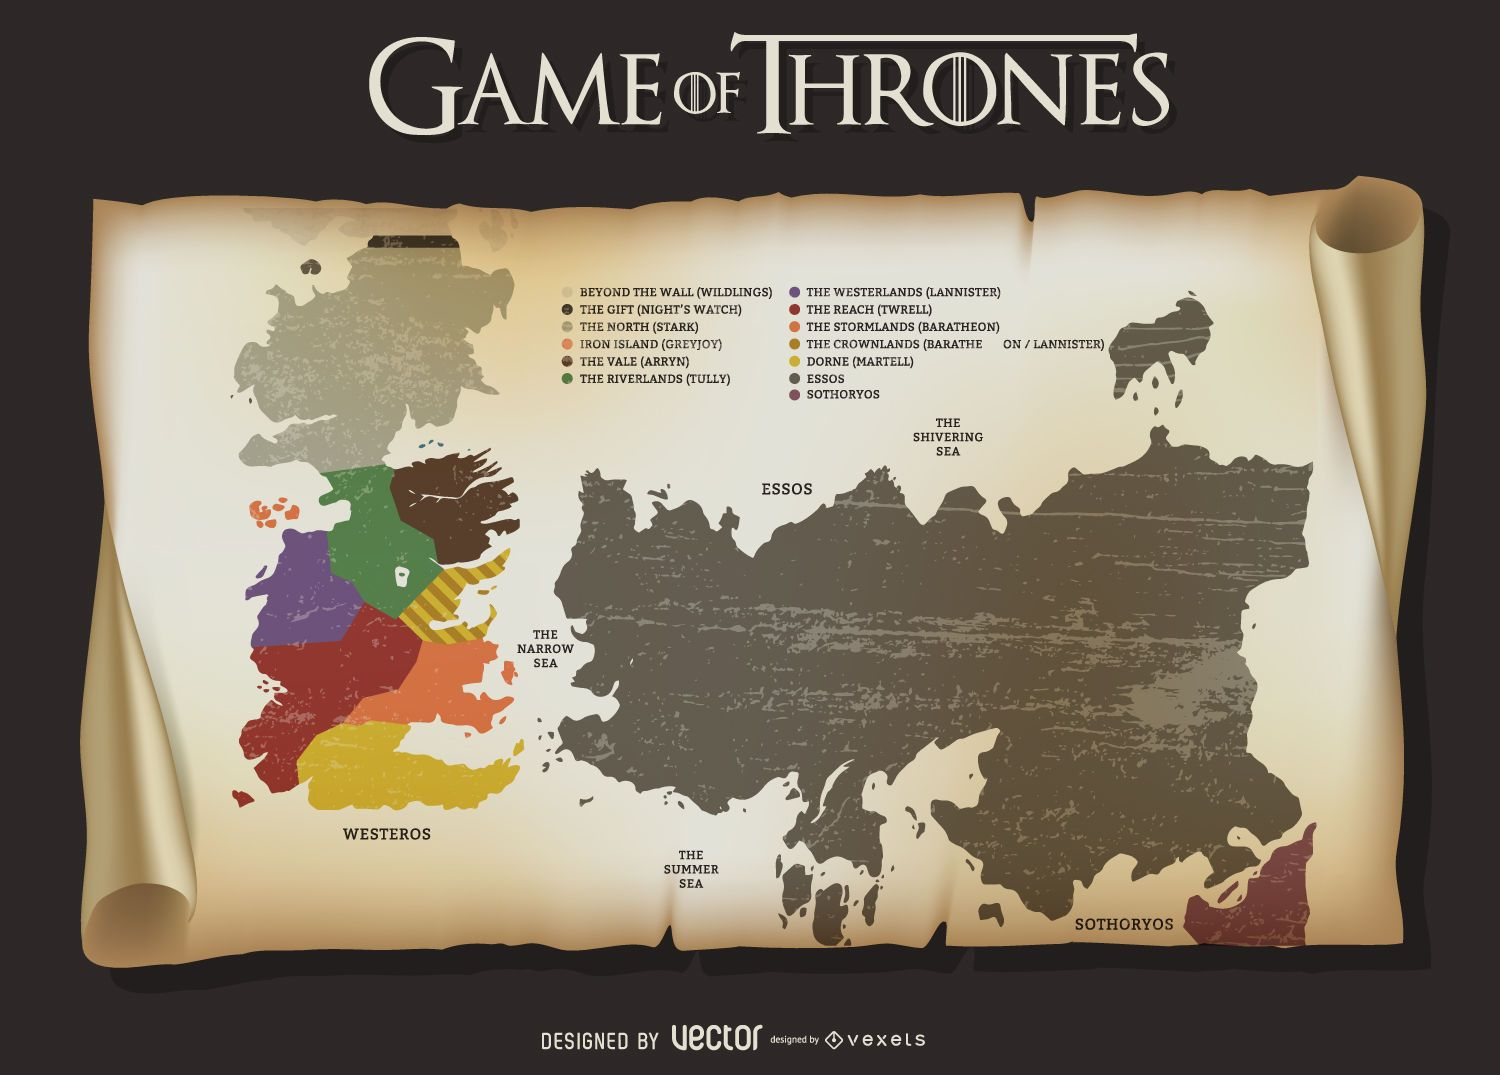 Game of thrones map vector download image user gumiabroncs Images